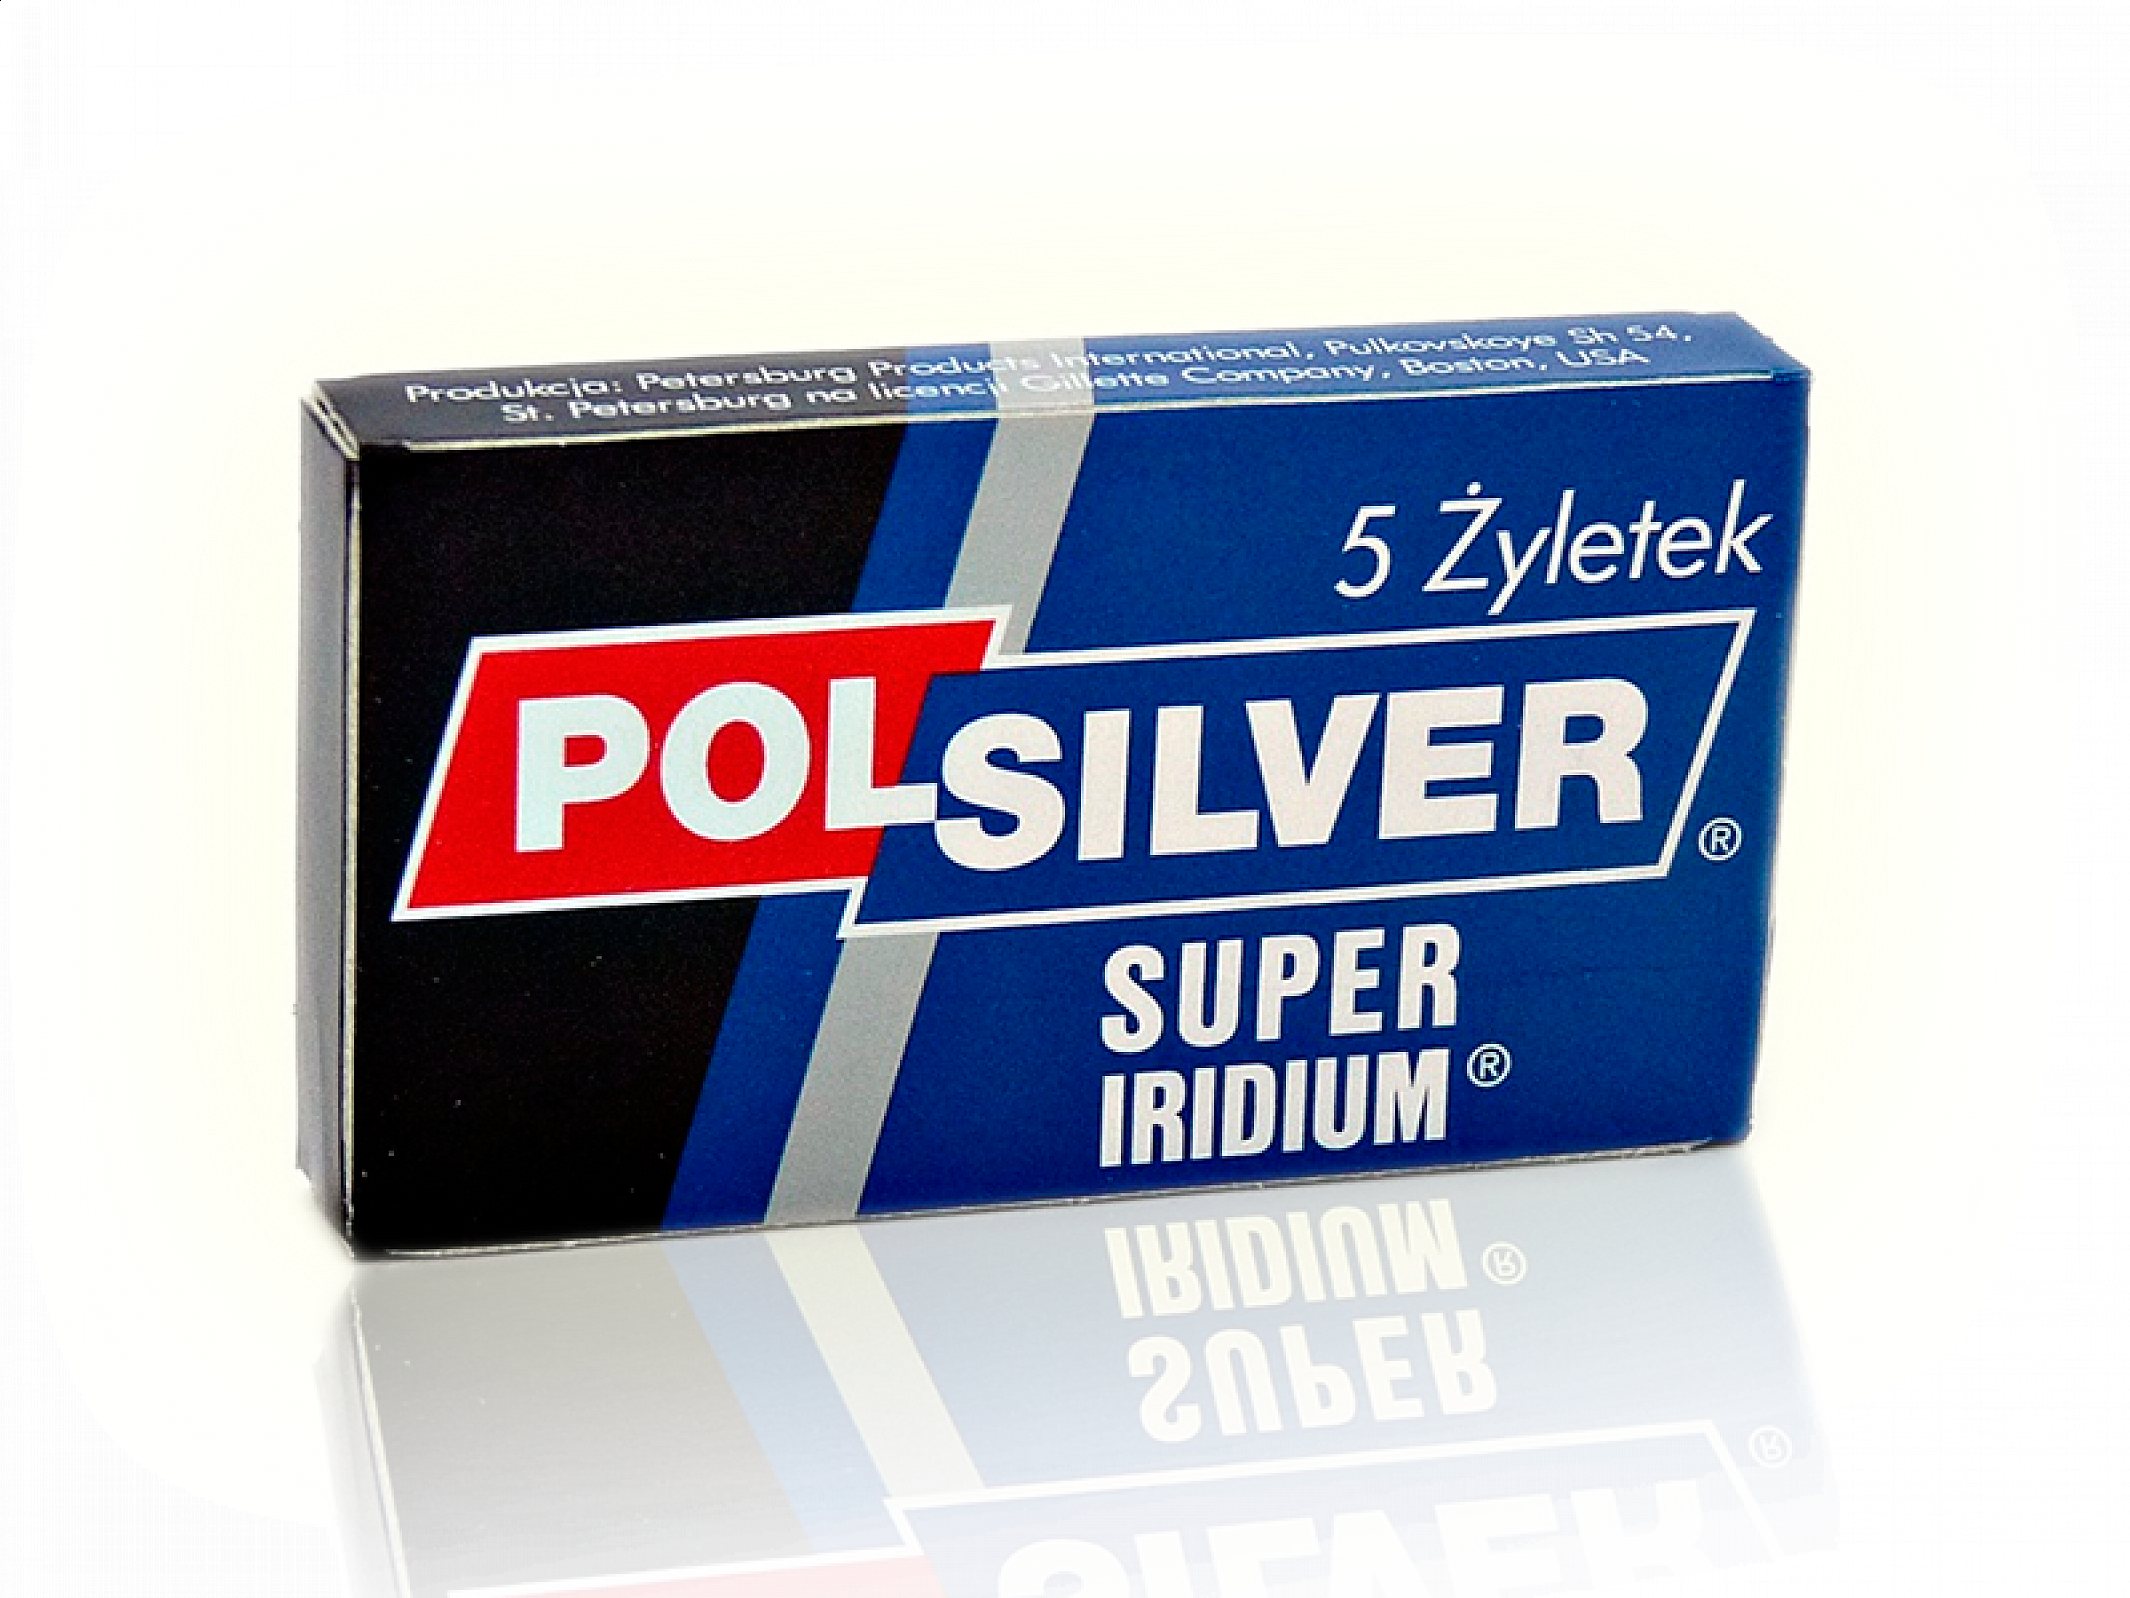 PolSilver blades are my favorite